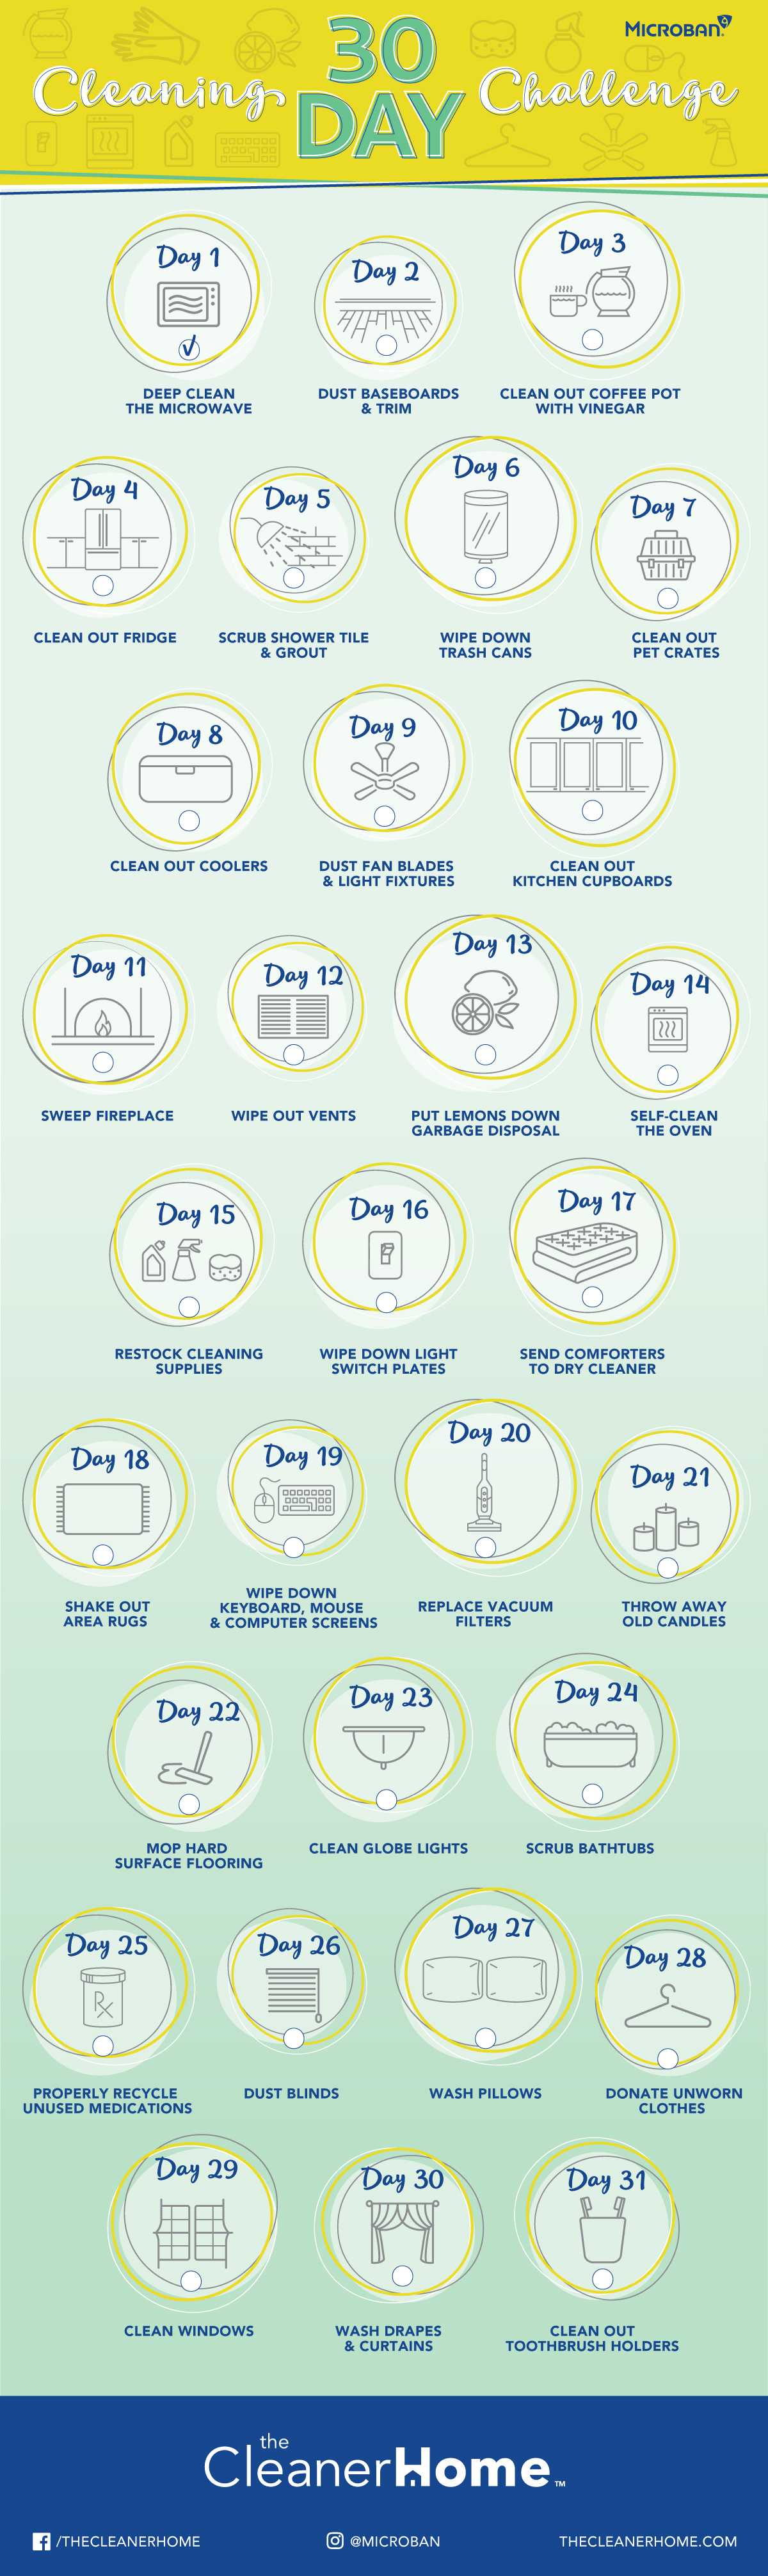 30 Day House Cleaning Challenge Infographic